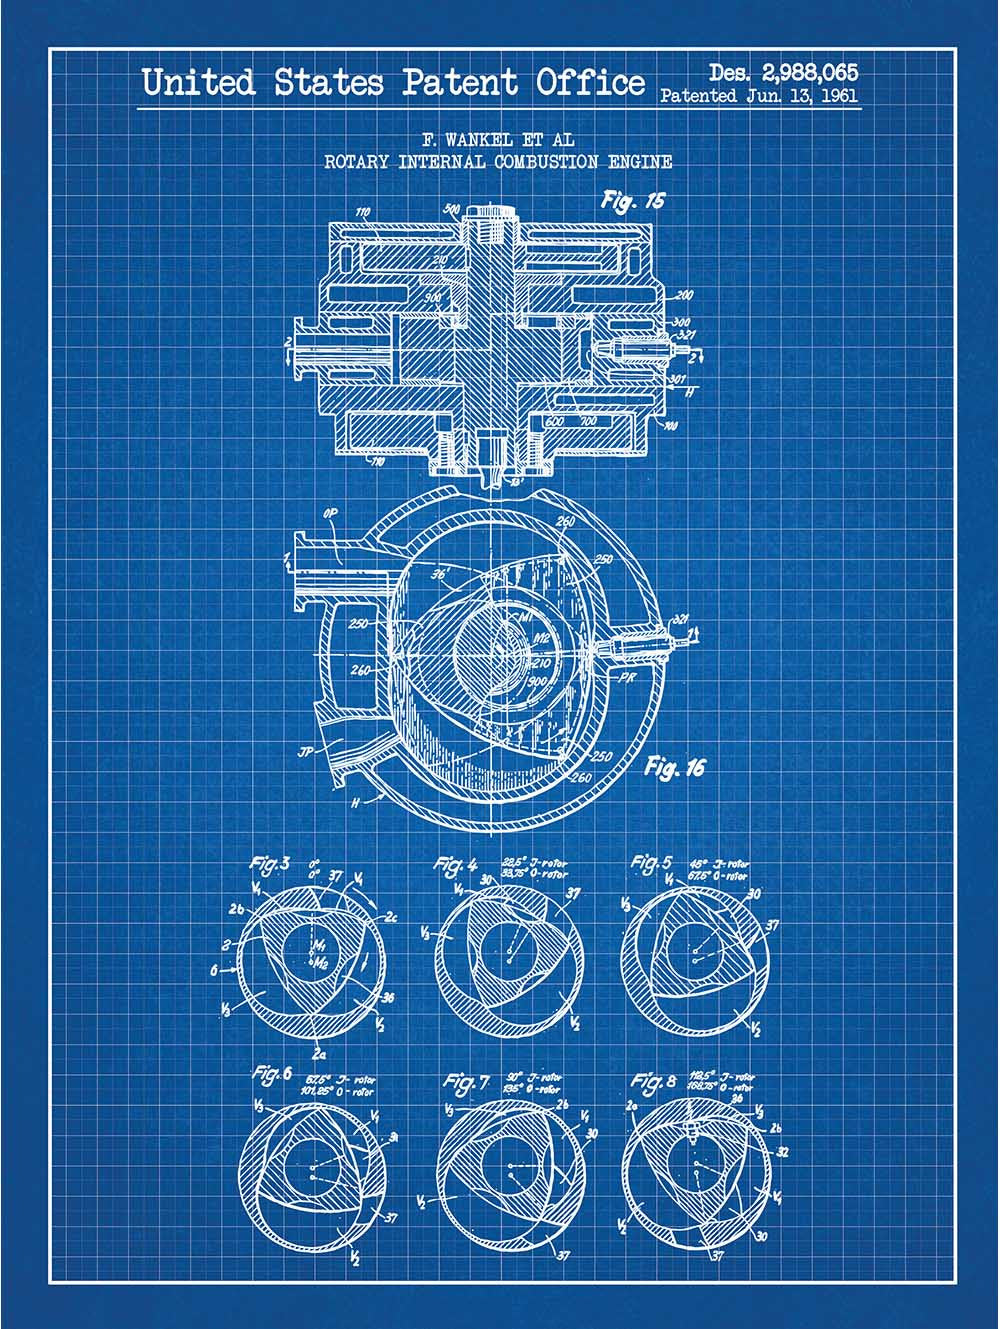 (N6) - Rotary Internal Combustion Engine - F. Wankel - 1961